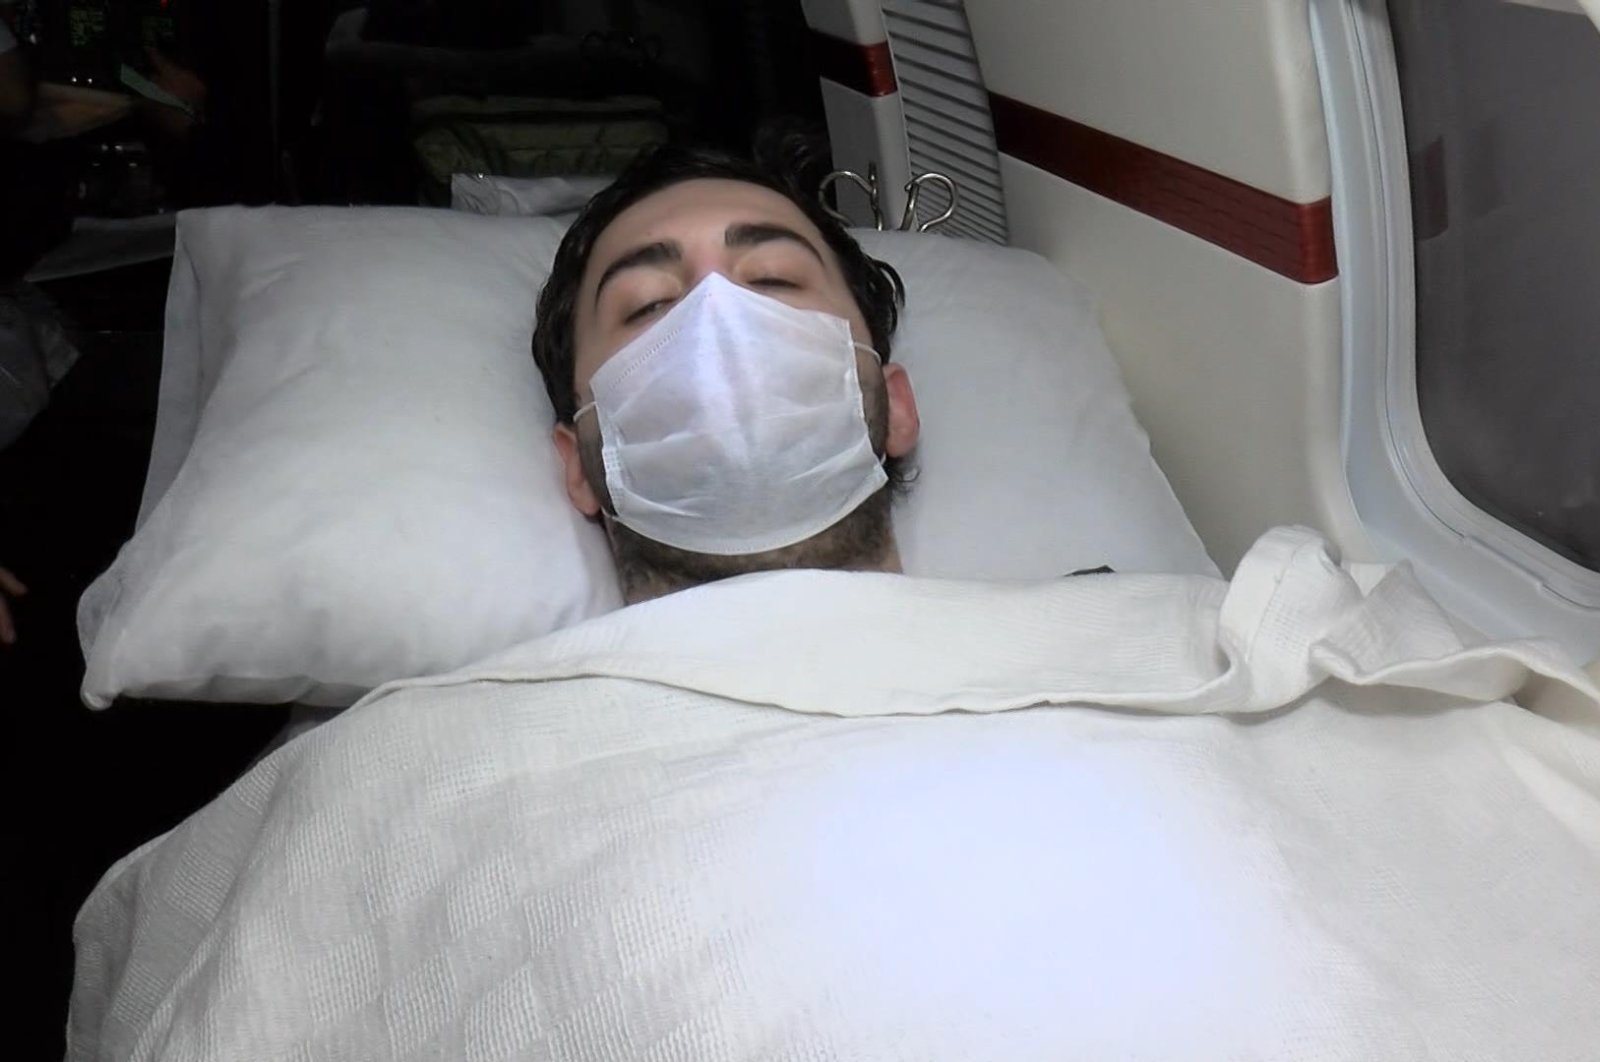 Haluk Hasan Seyithanoğlu, 24, lies on a bed inside the plane provided by the Turkish Health Ministry to take the student back to Turkey, April 27, 2020. (DHA Photo)